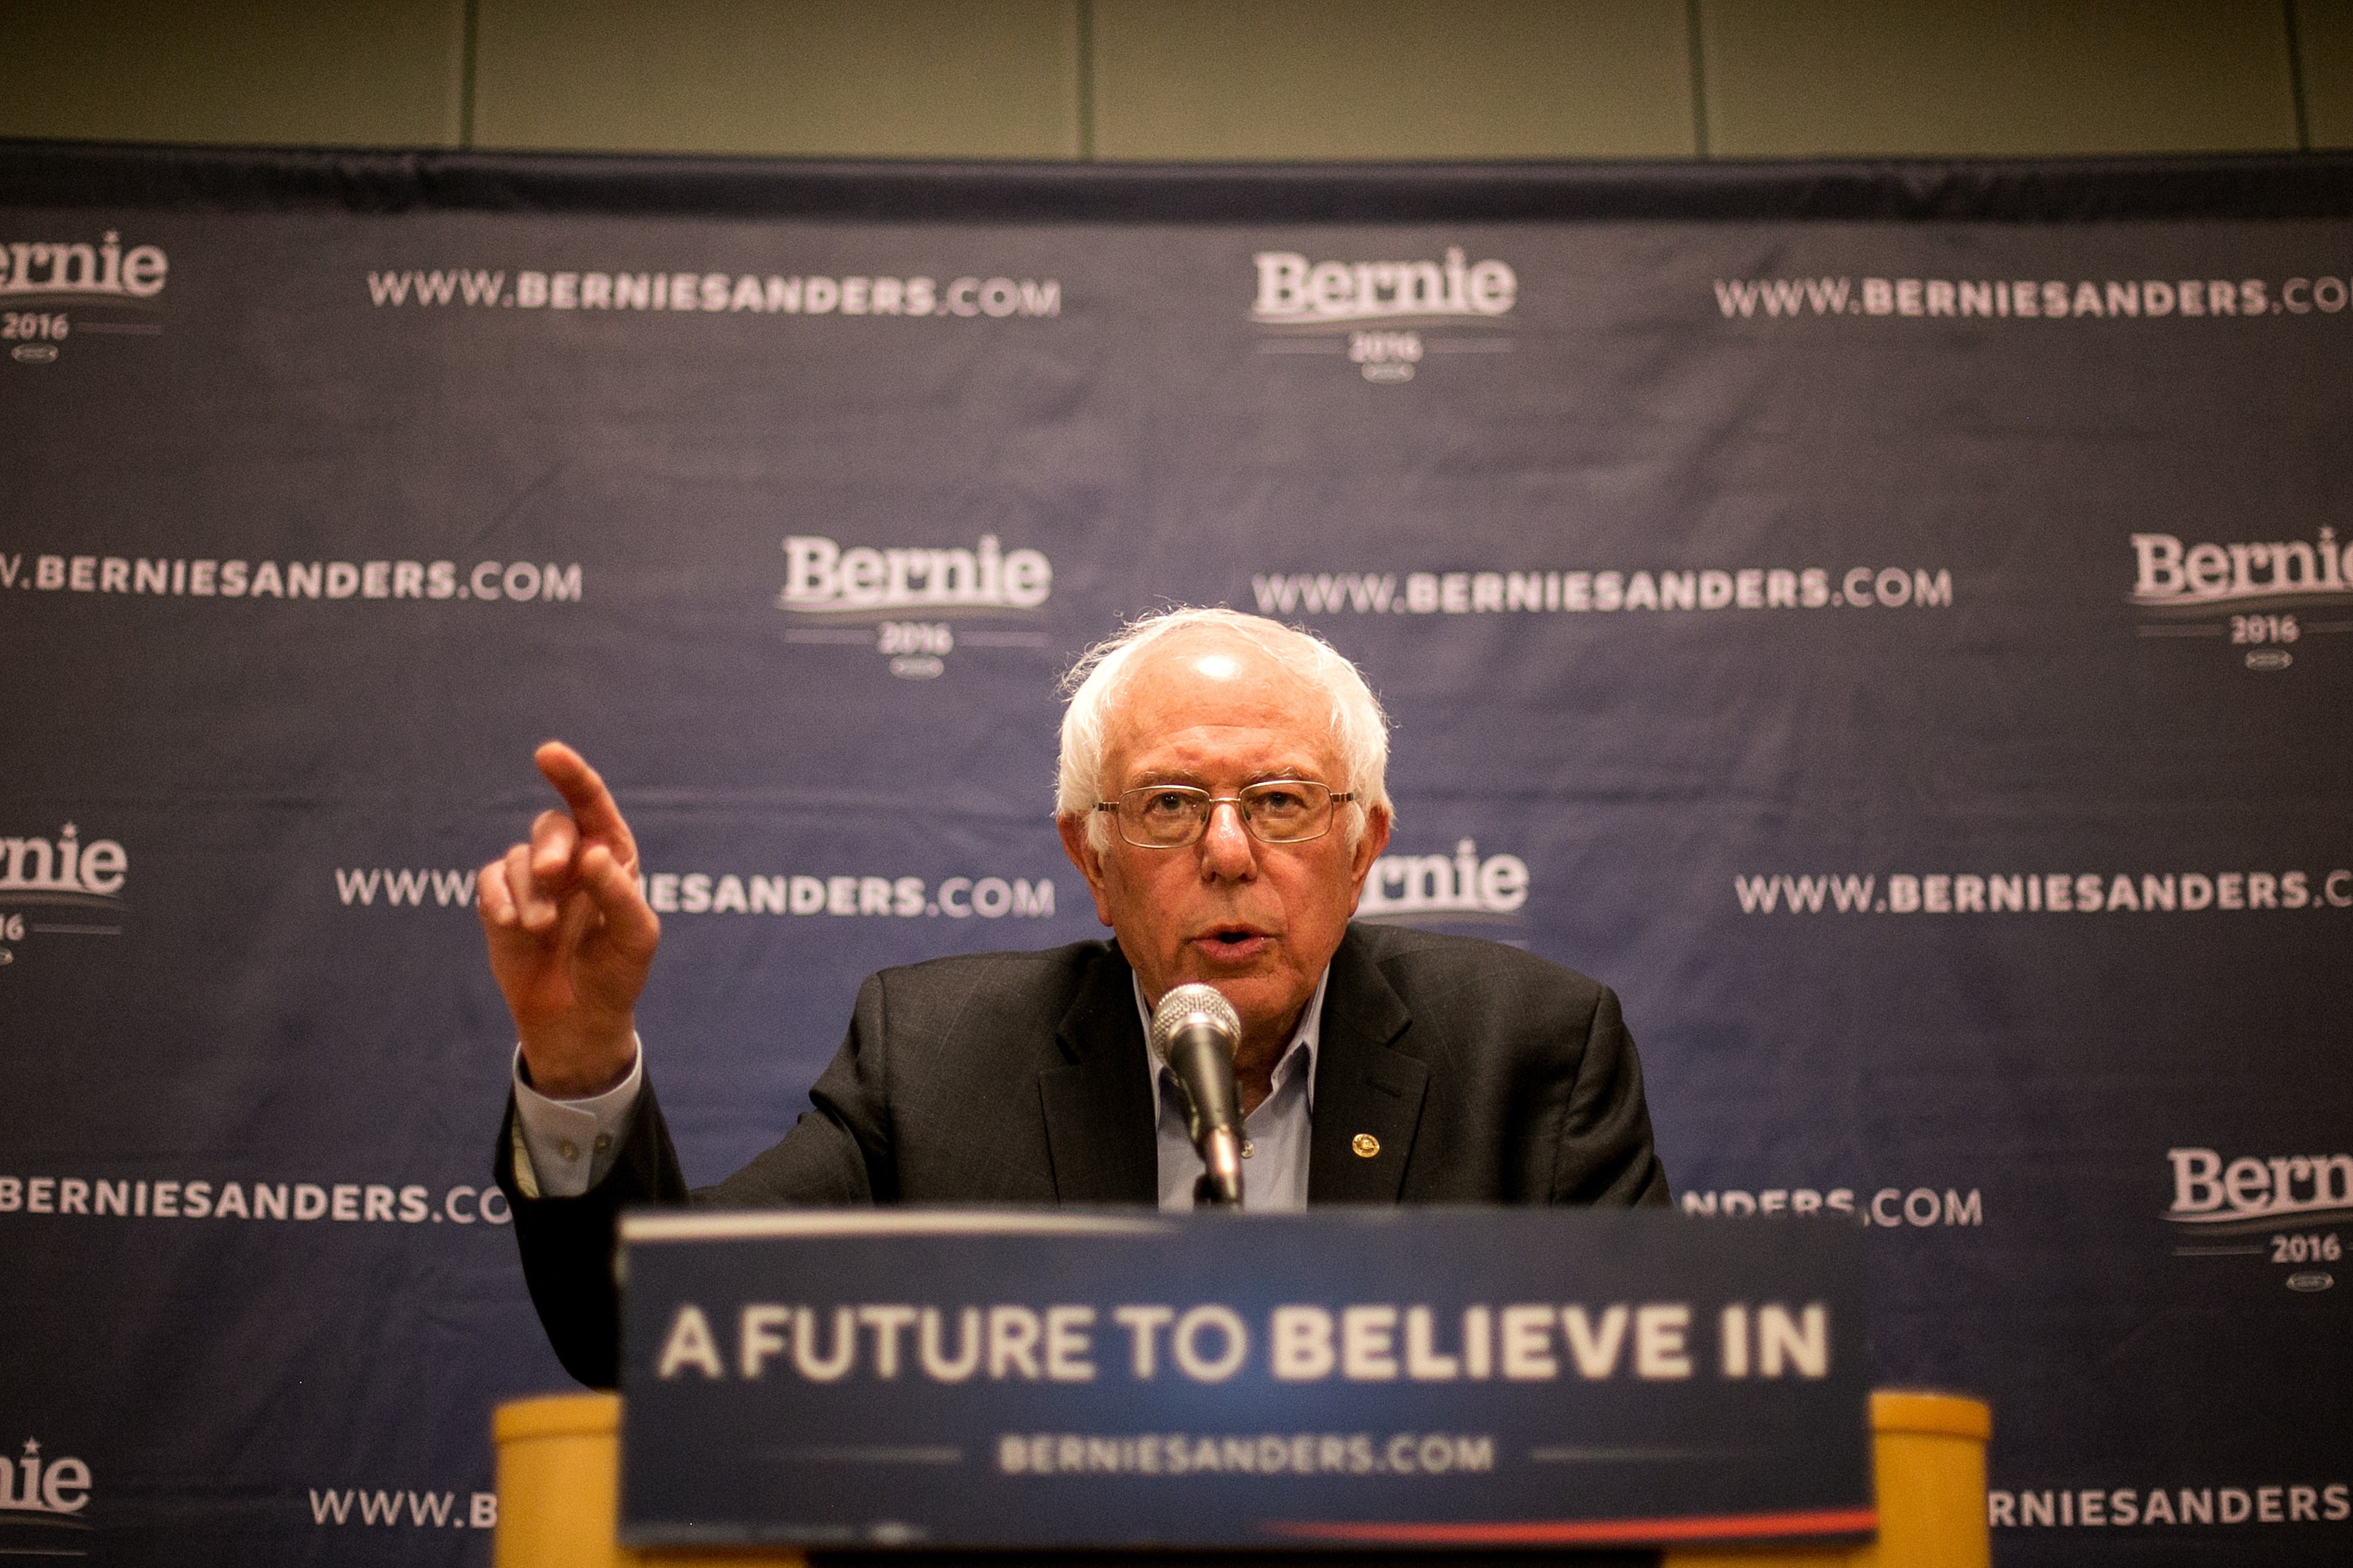 Sen. Bernie Sanders of Vermont speaks to reporters about winning the Wyoming caucus at a rally at the LaGuardia Performing Arts Center in New York on Saturday. The Sanders campaign examined Zephyr Teachout's 2014 campaign for strategies to deal with New York State's varied Democratic population.